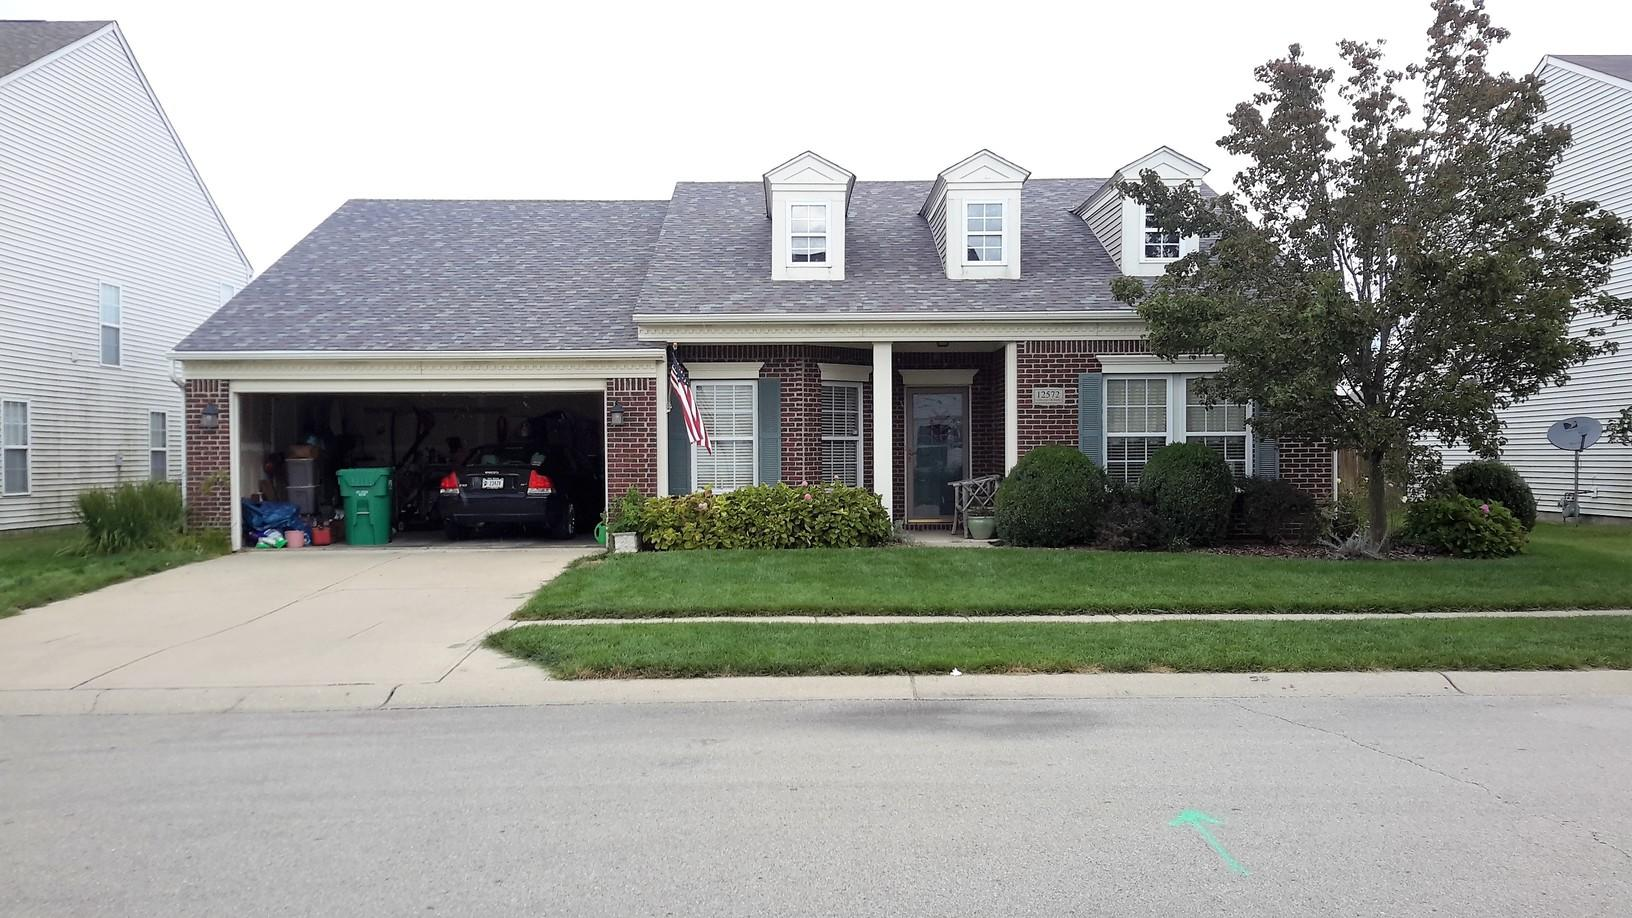 Roof Replacement Roof Replacement In Fishers Indiana